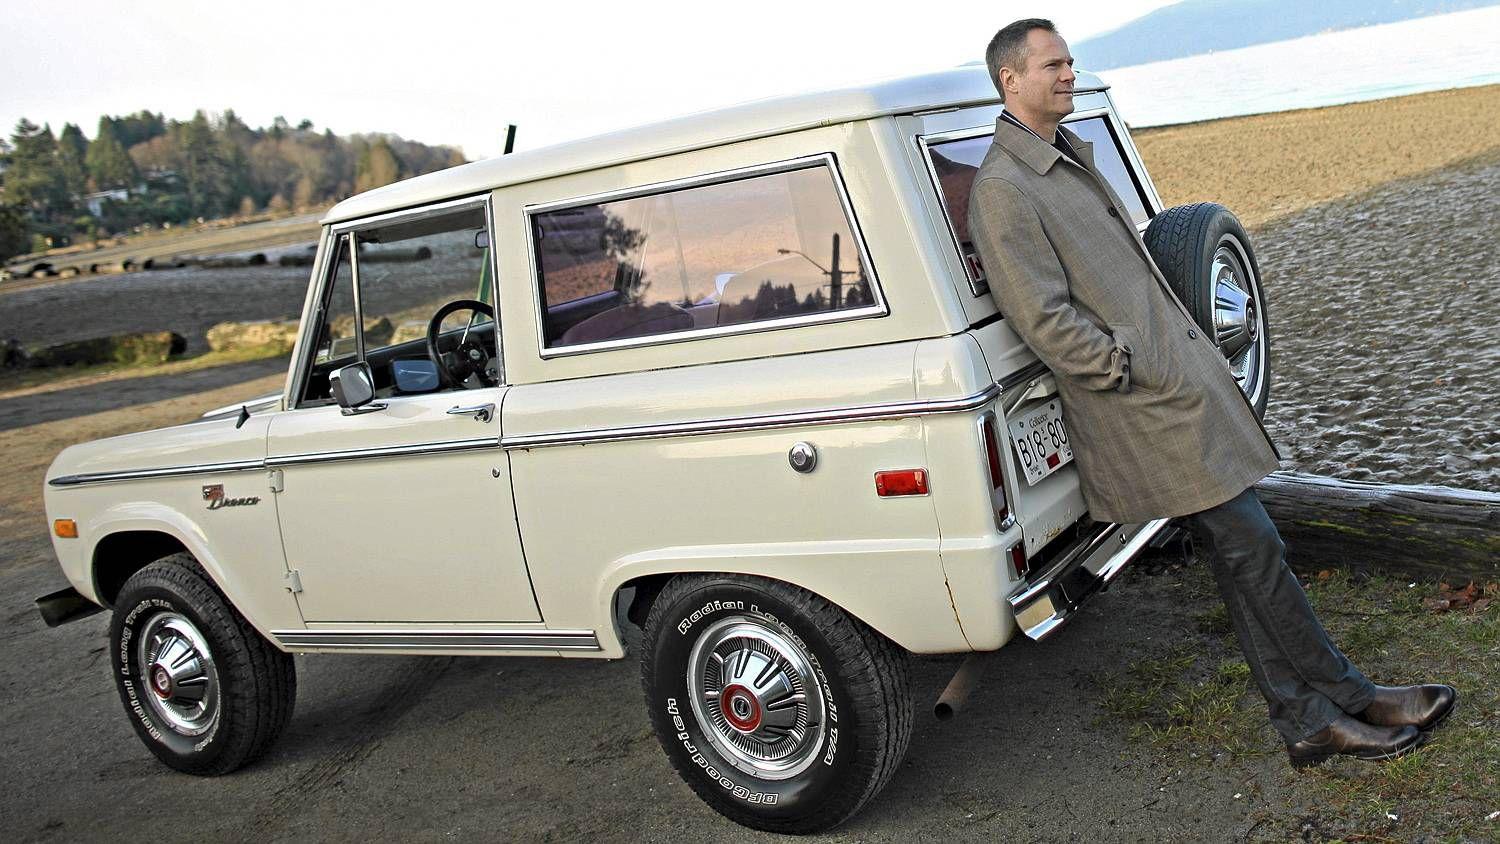 An Old Ford Bronco Is Newsman S Anchor The Globe And Mail